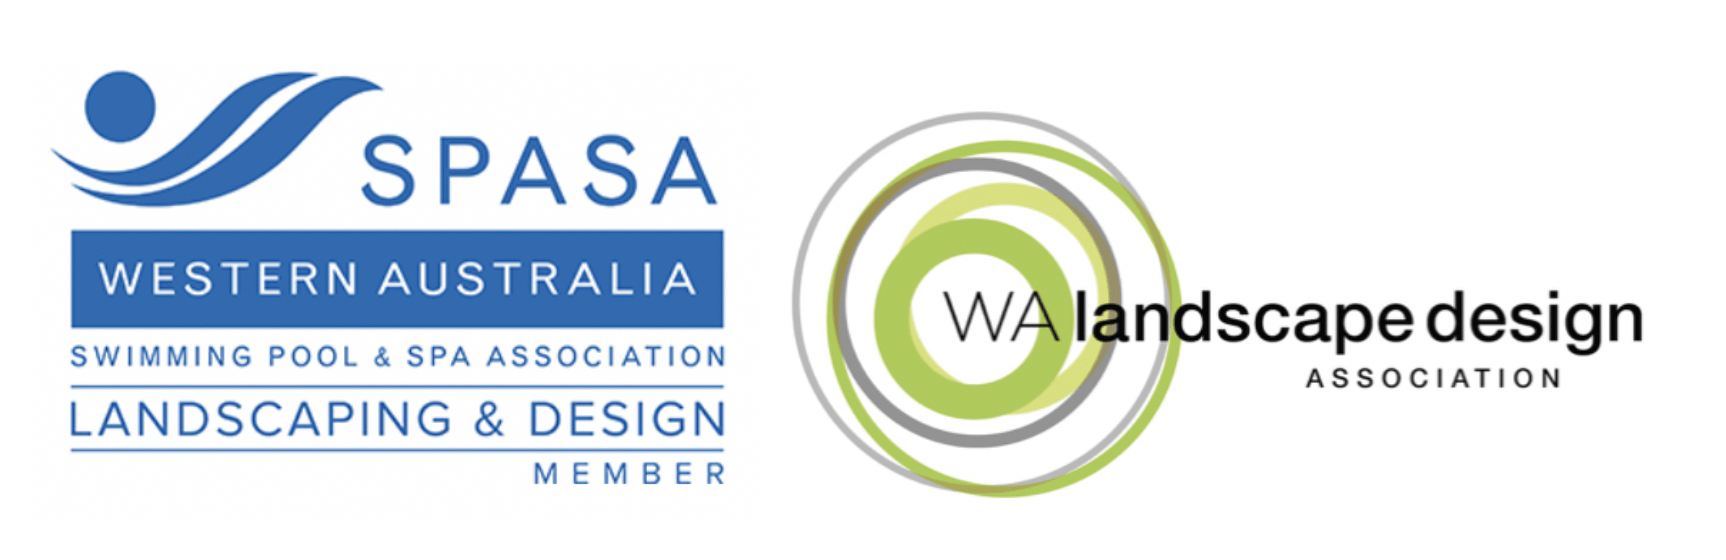 Premier Constructed and Concrete Perth Partners - SPASA and WALDA Designer and Spa Pool Association